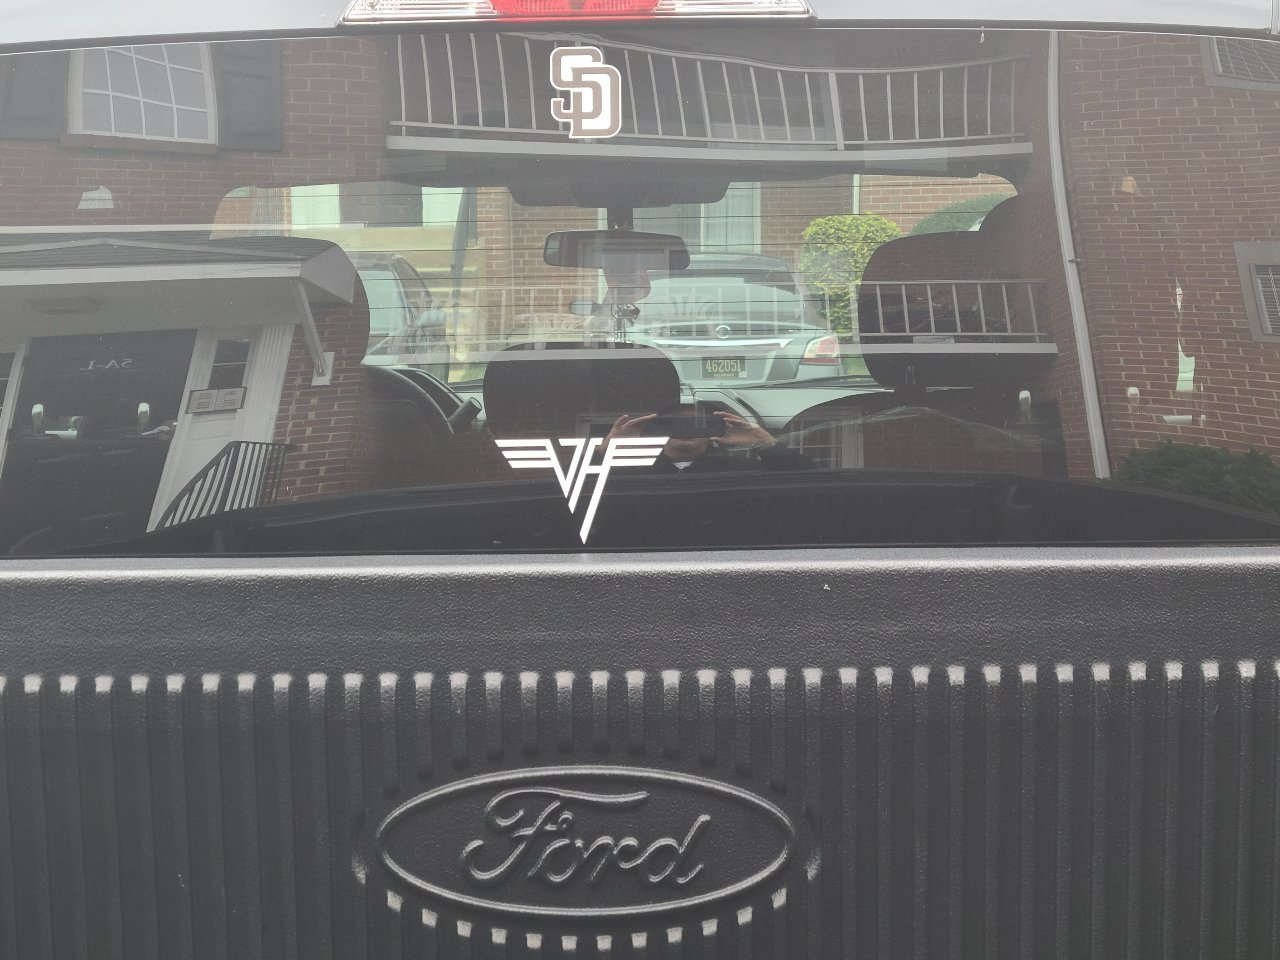 Anthony's photograph of their Van Halen Sticker